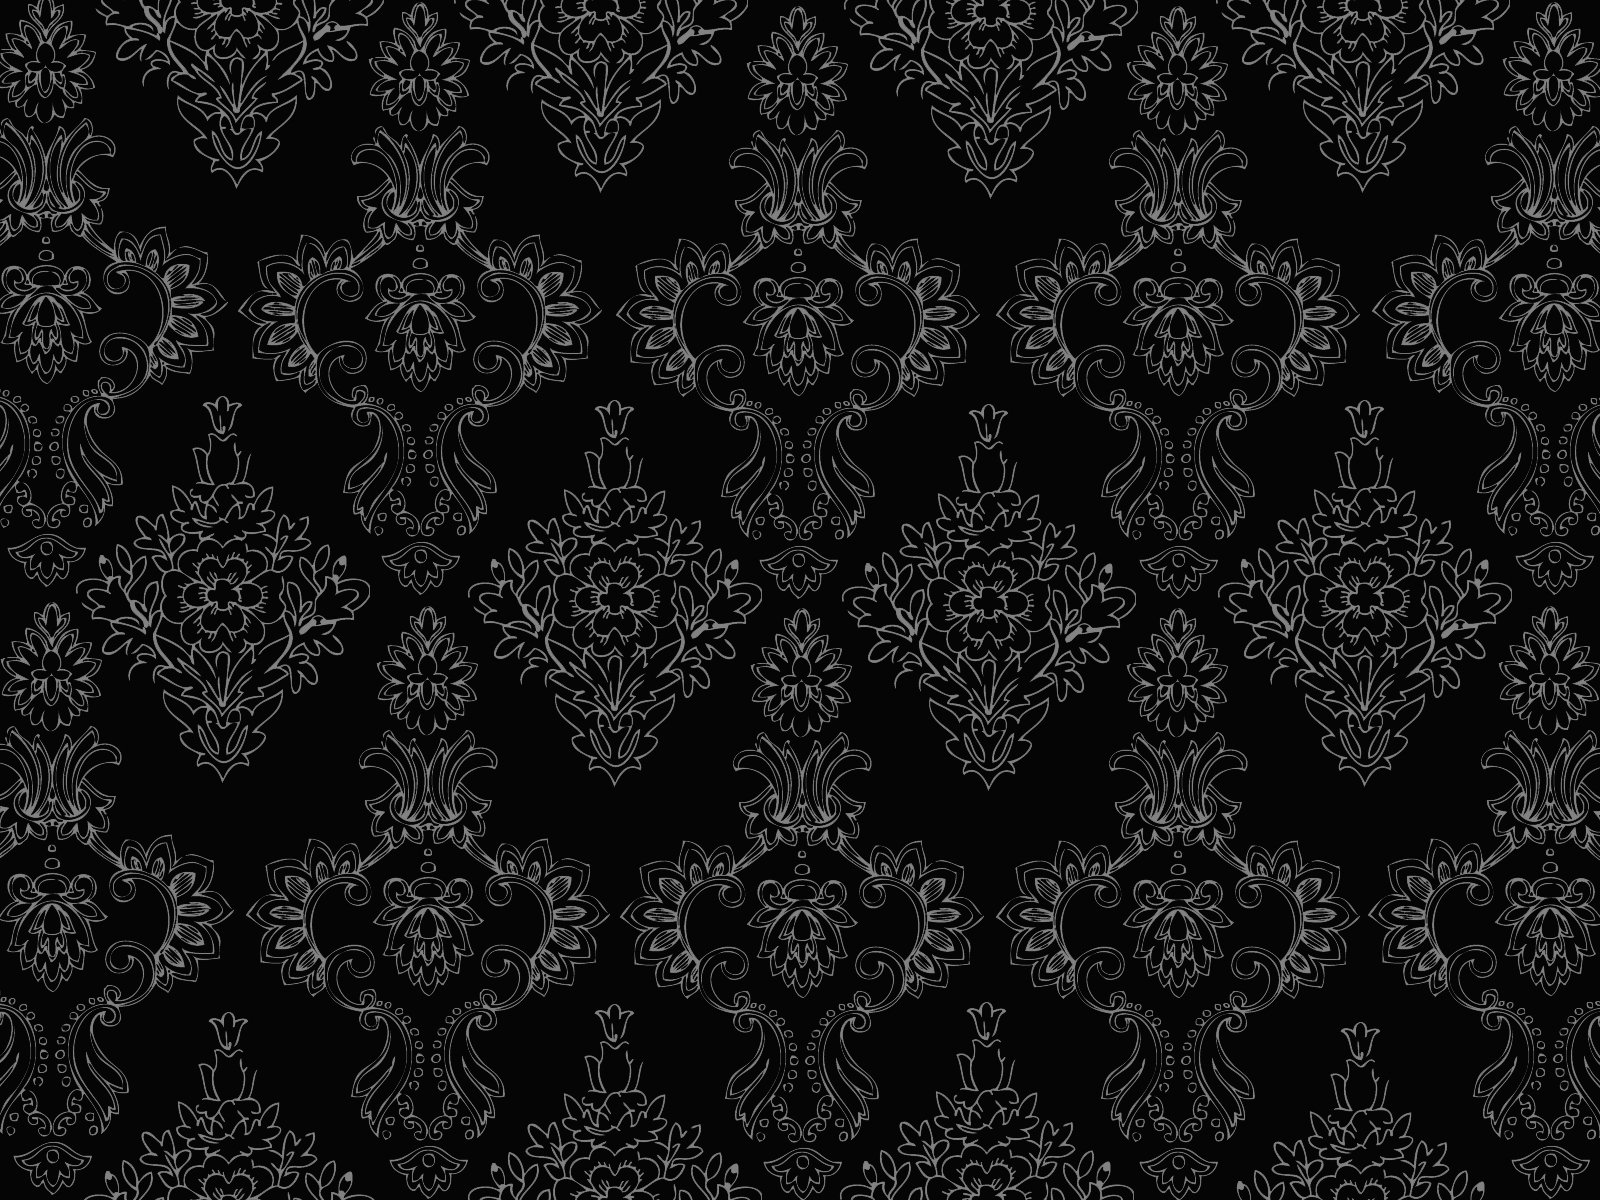 tumblr static pattern texture black and white vintage hd wallpaper 1600x1200